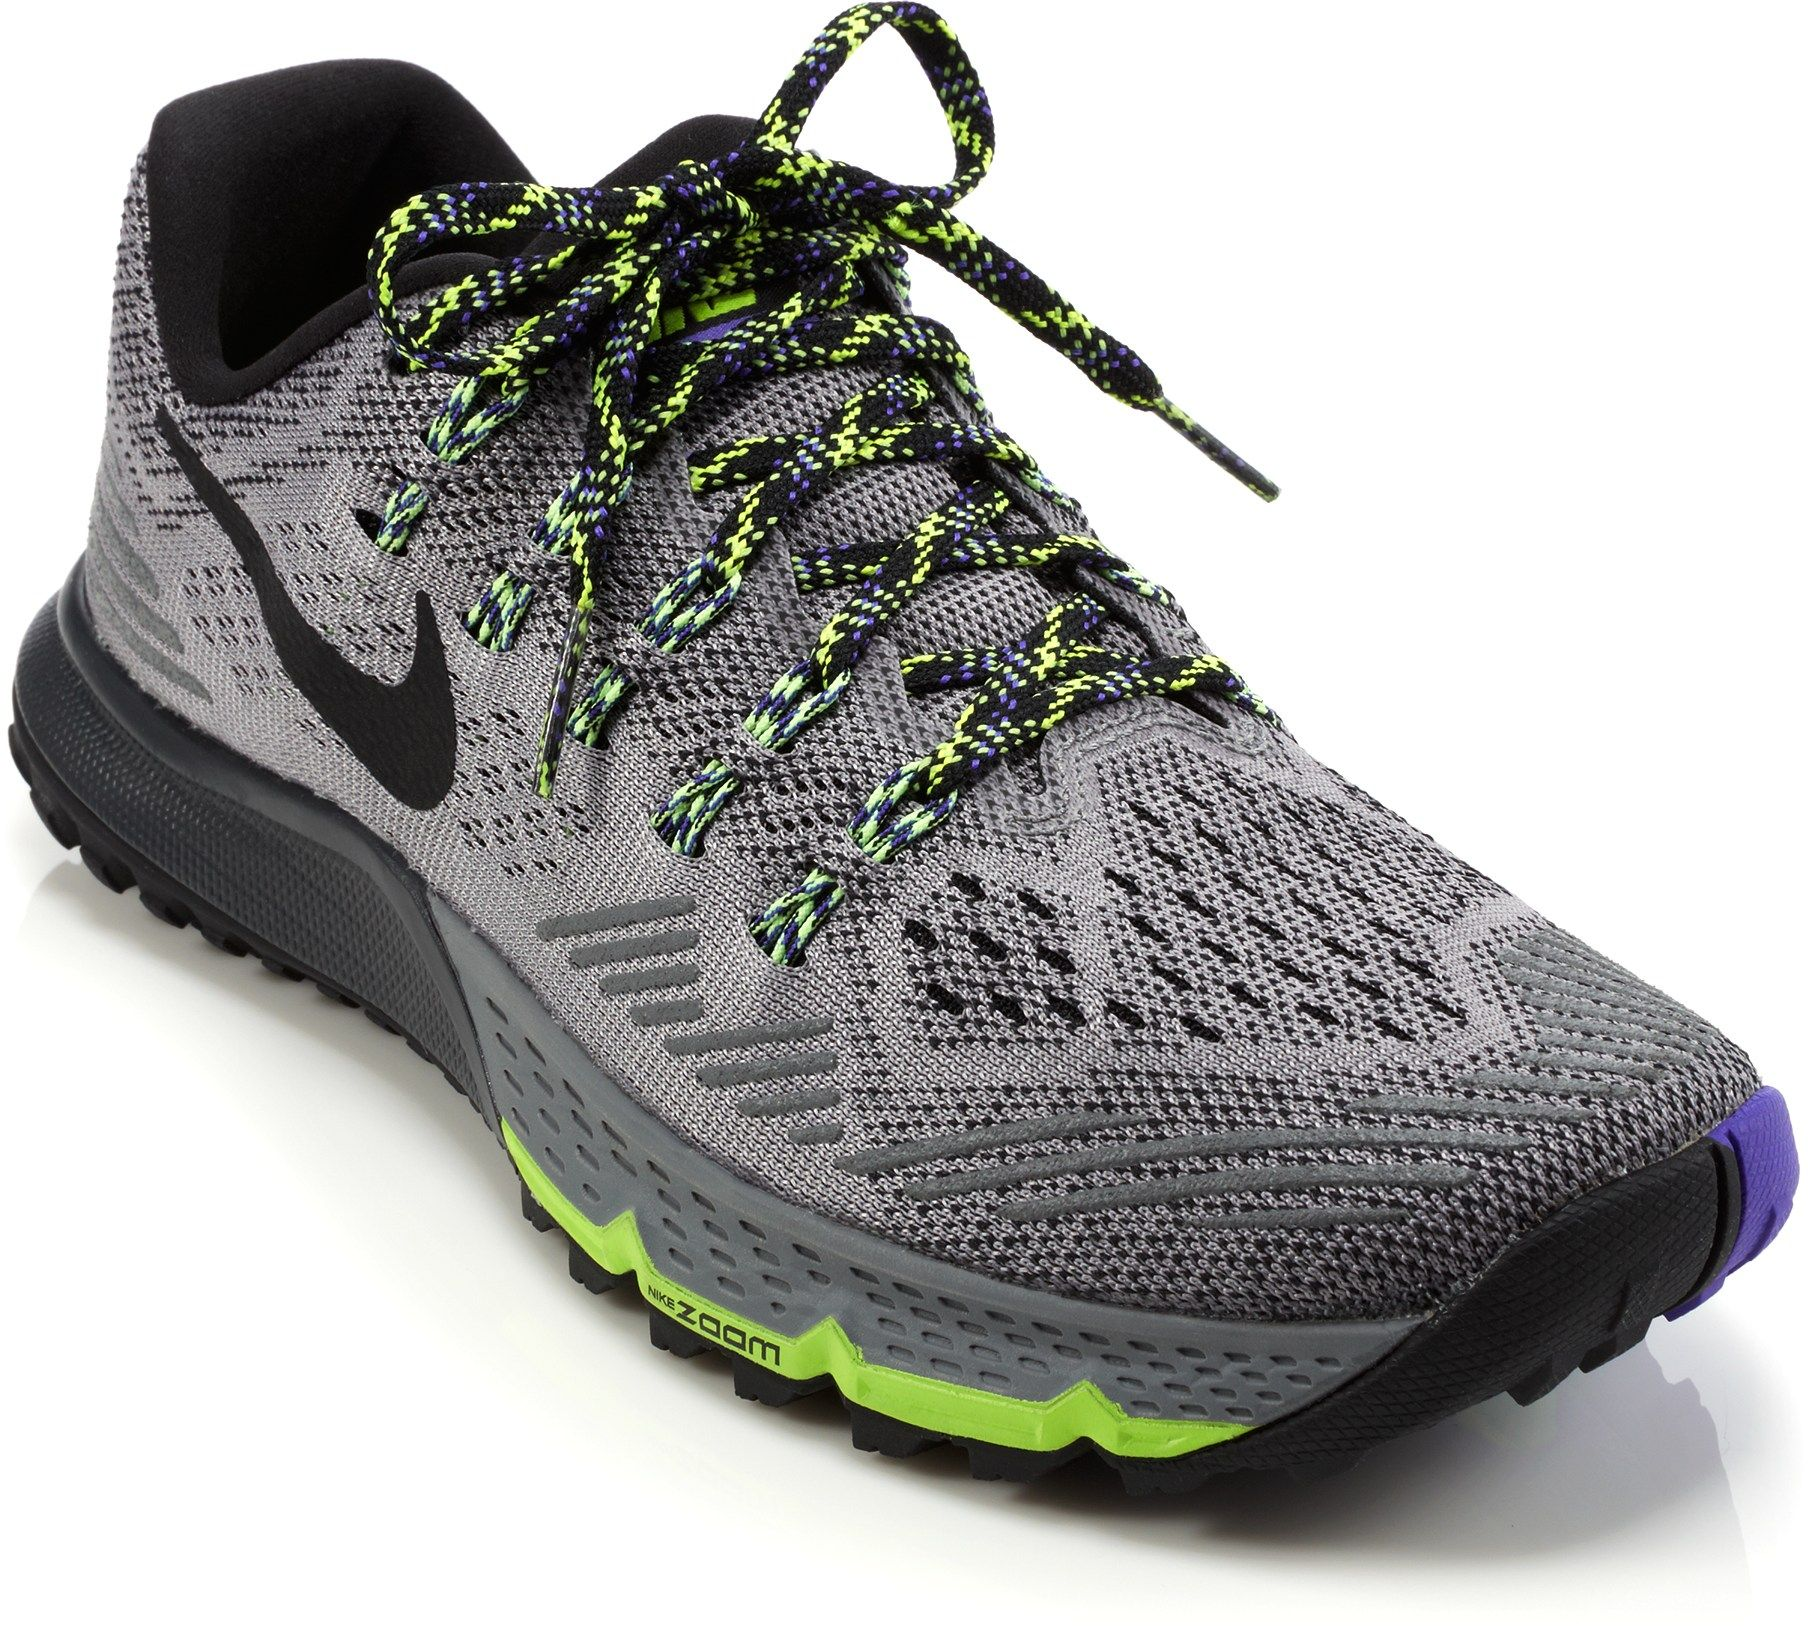 Nike Air Zoom Terra Kiger 3 Trail-Running Shoes - Women's